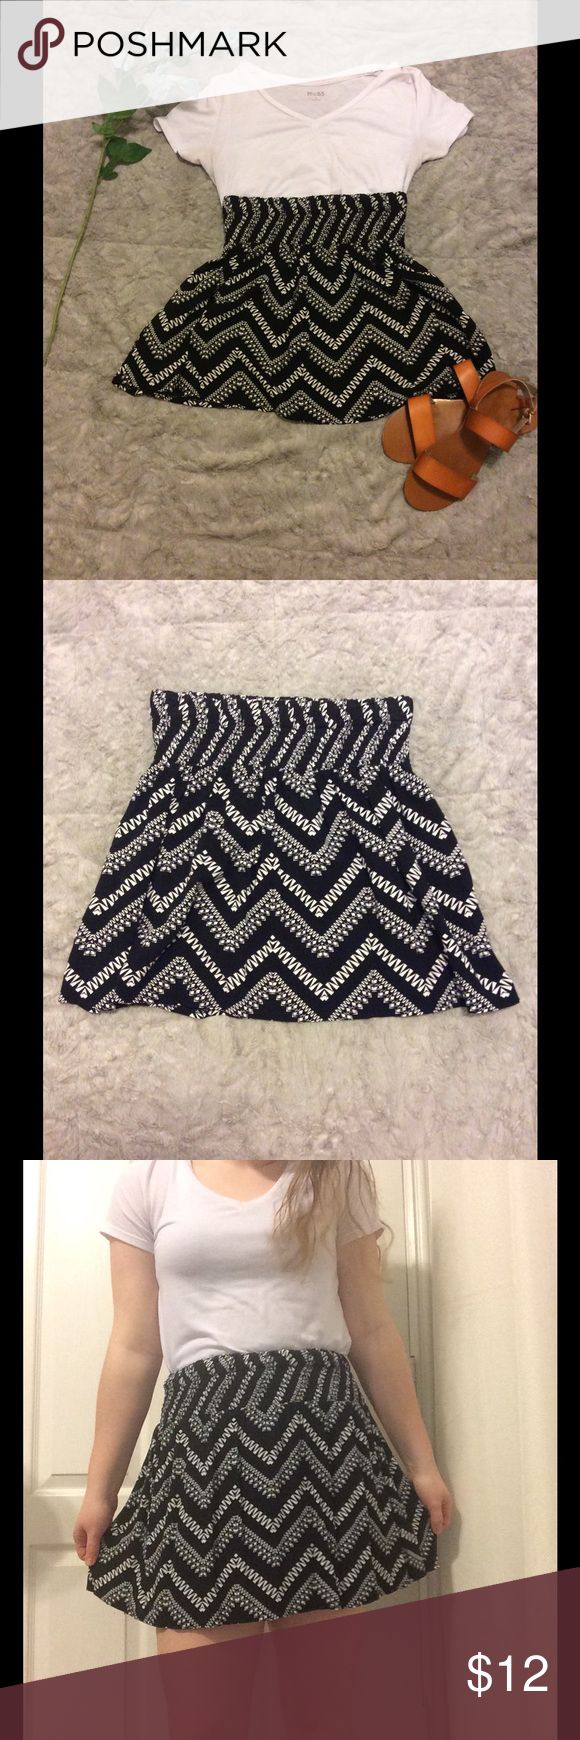 Women's black and white chevron skirt Women's black and white chevron skirt. Elastic waistband. Short and flowy. In great, gently used condition. Only worn a few times. Skirts